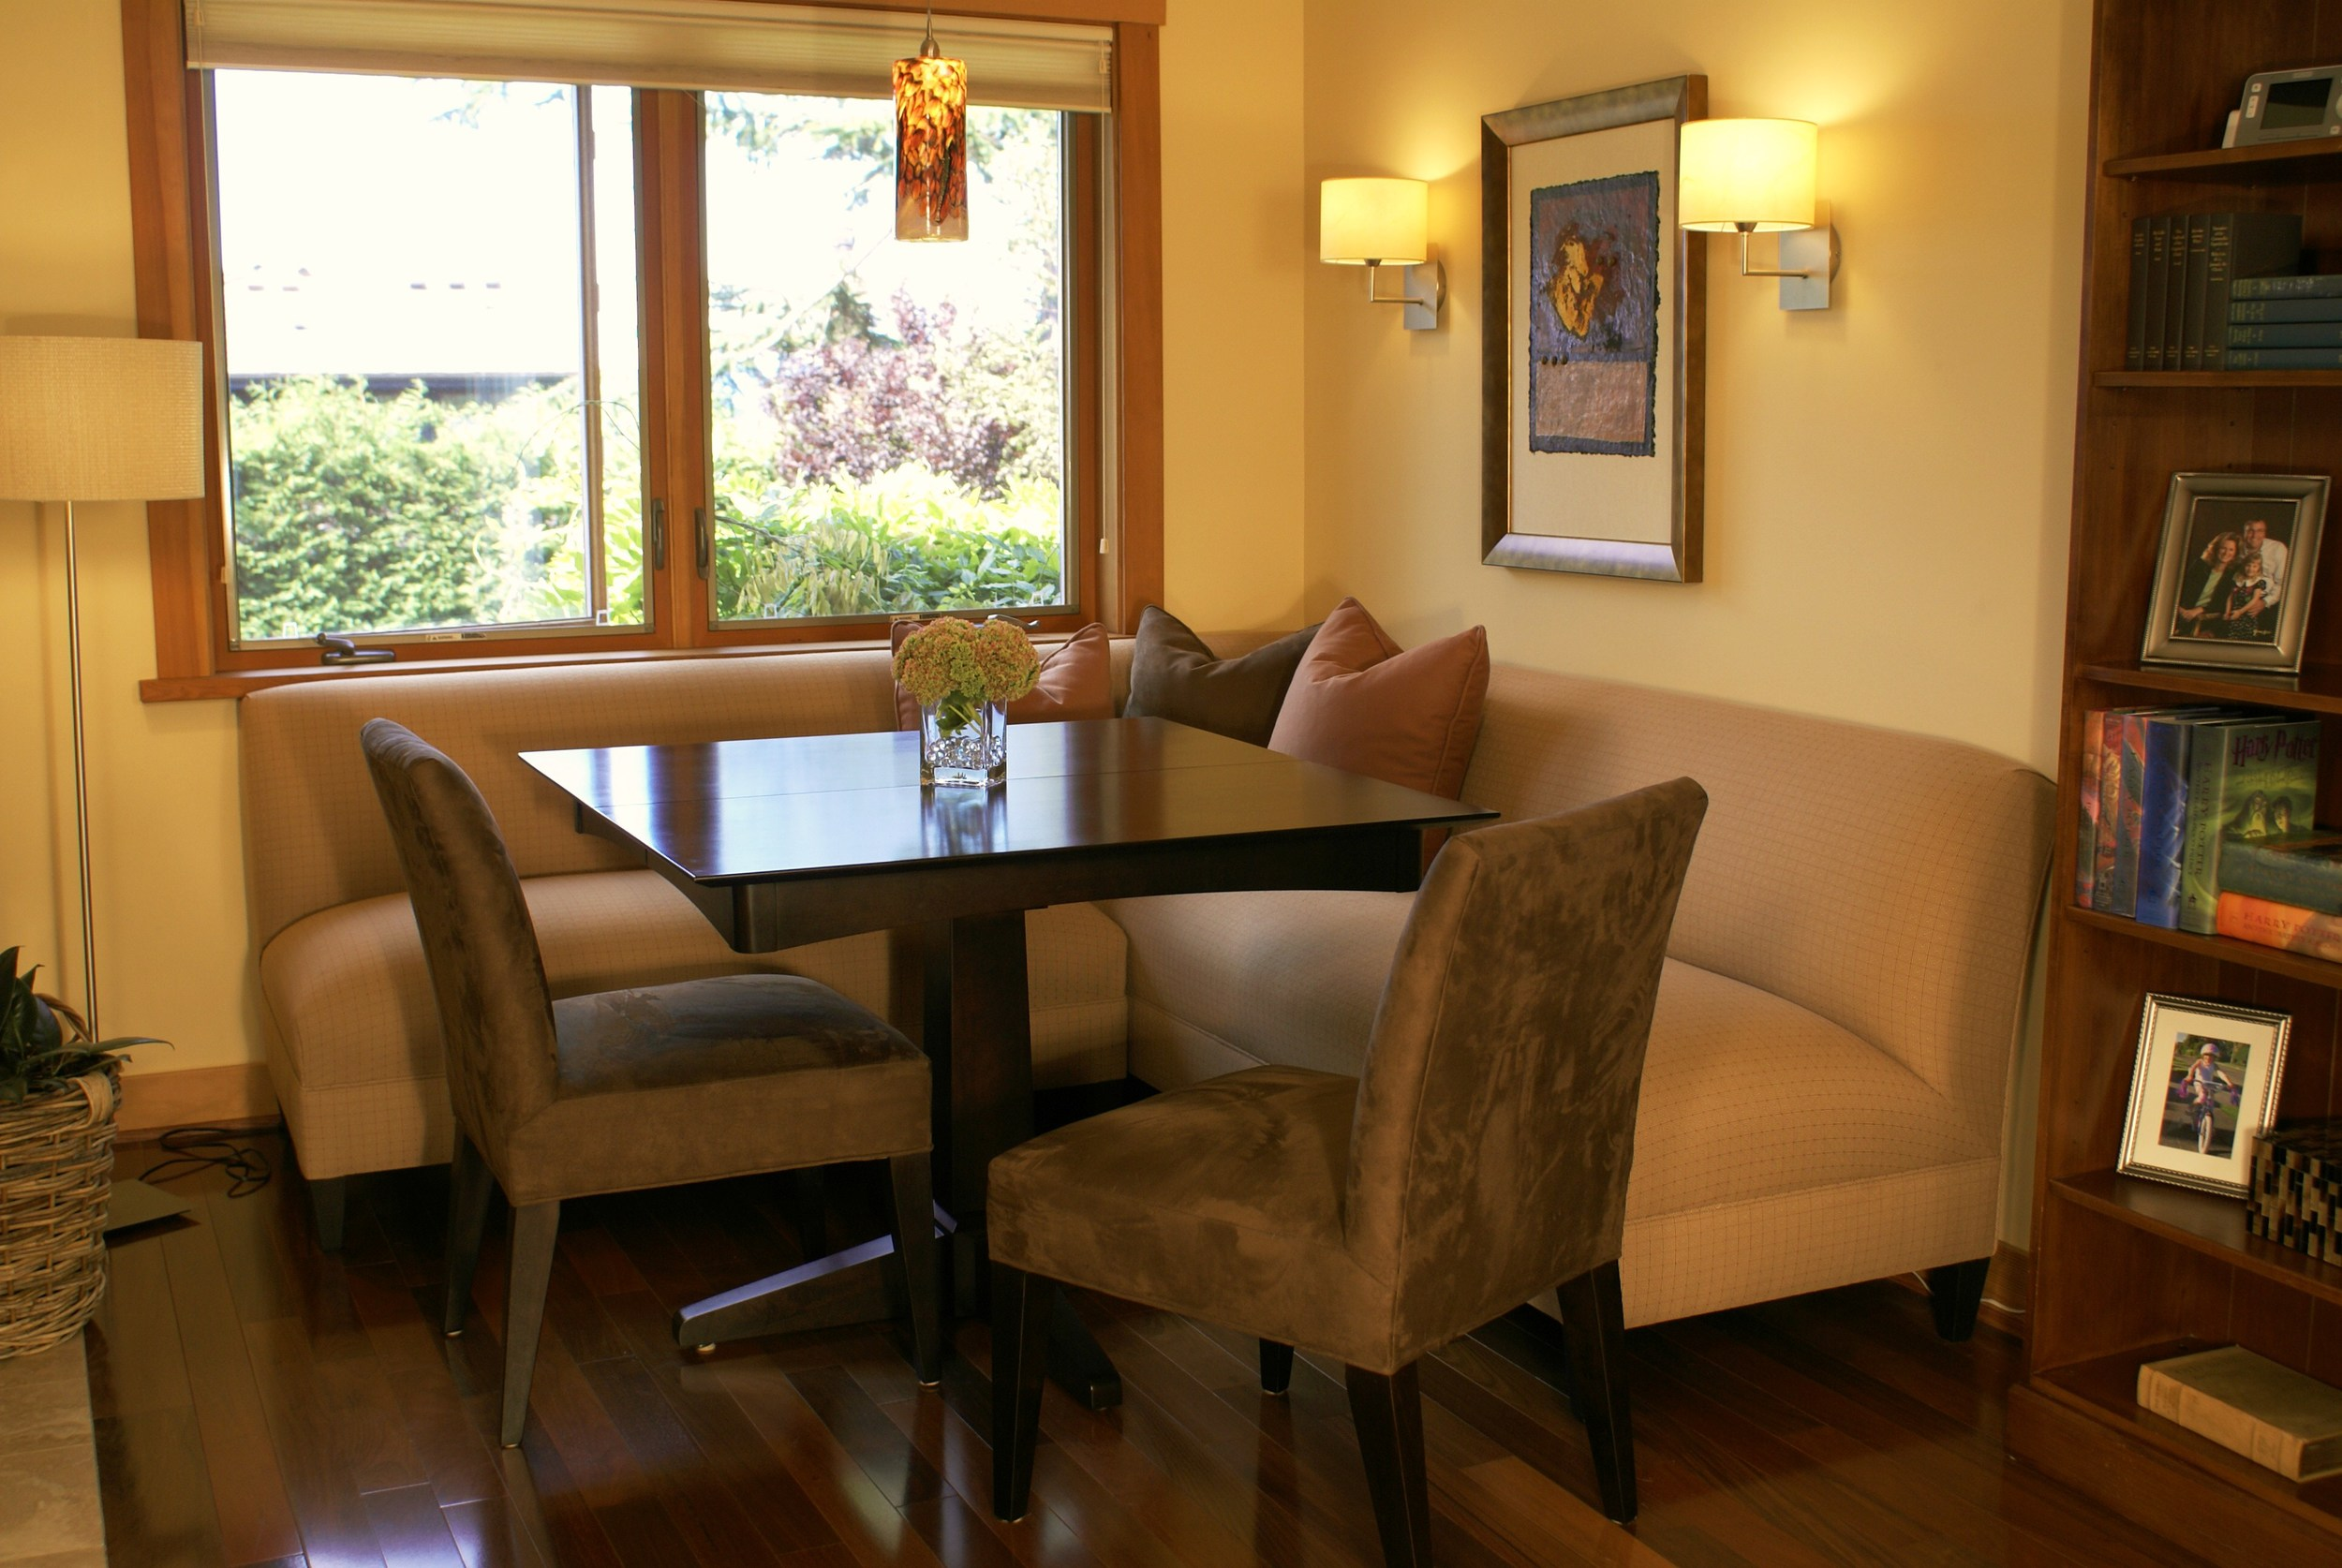 This space was featured in  Seattle Homes & Lifestyles Magazine  and had been used as a tiny family room. We designed the custom L-shaped banquette and upholstered it in a wonderful outdoor fabric. The new chairs are in easy-care ultrasuede. New light fixtures complete the mood.